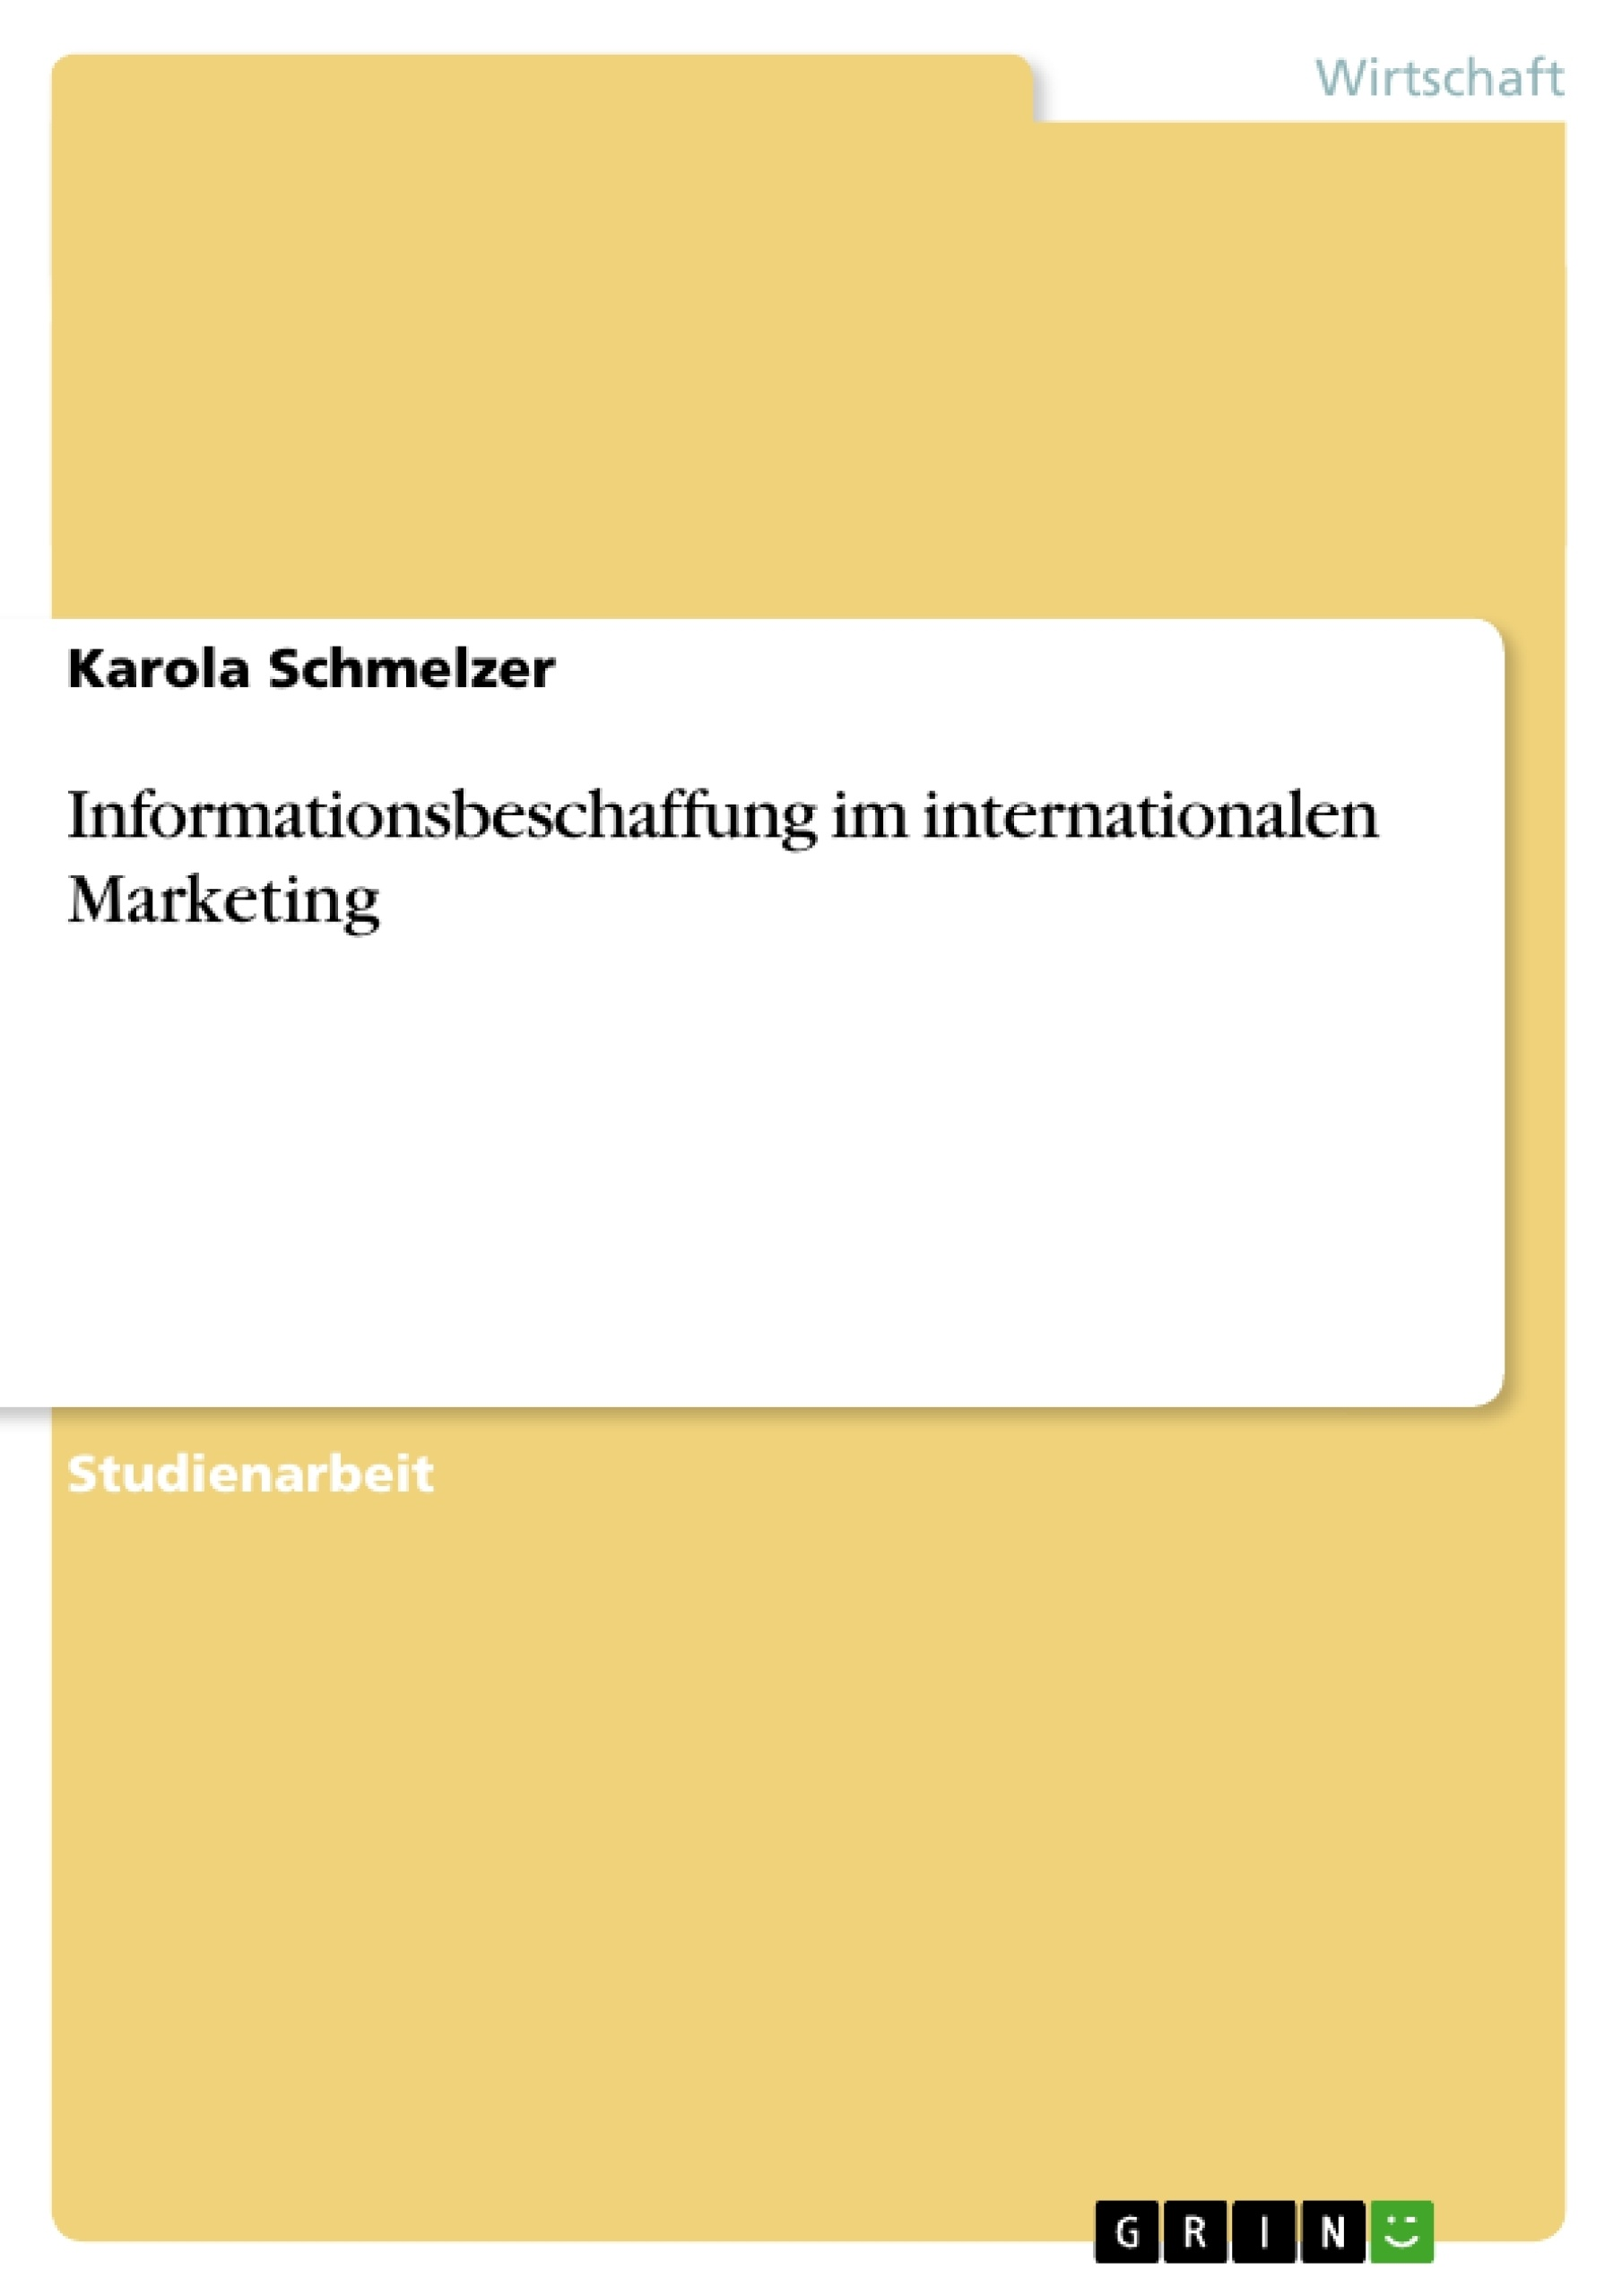 Titel: Informationsbeschaffung im internationalen Marketing